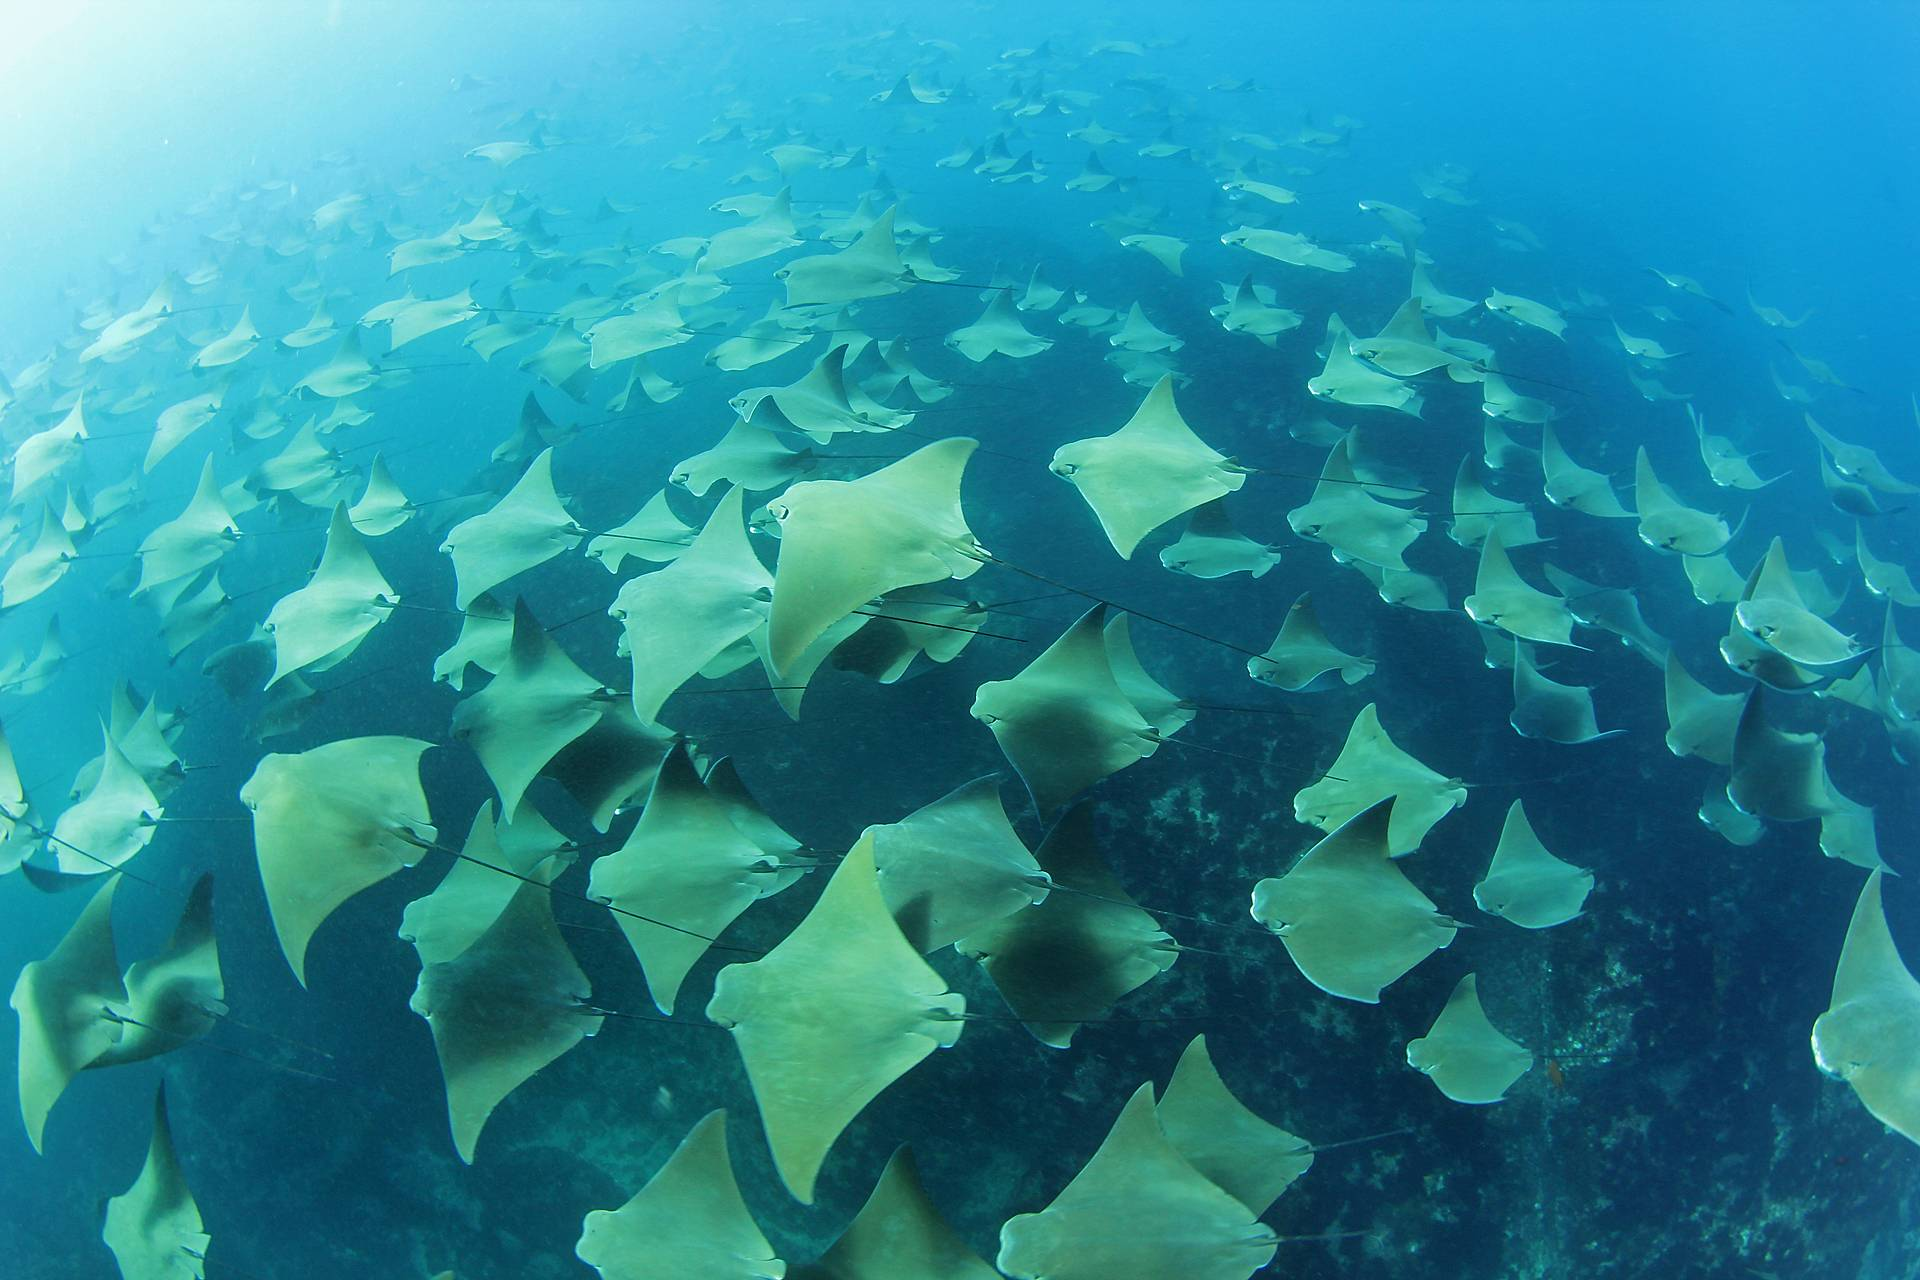 Stingray underwater ocean blue wallpaper 1920x1280 for Florida cool